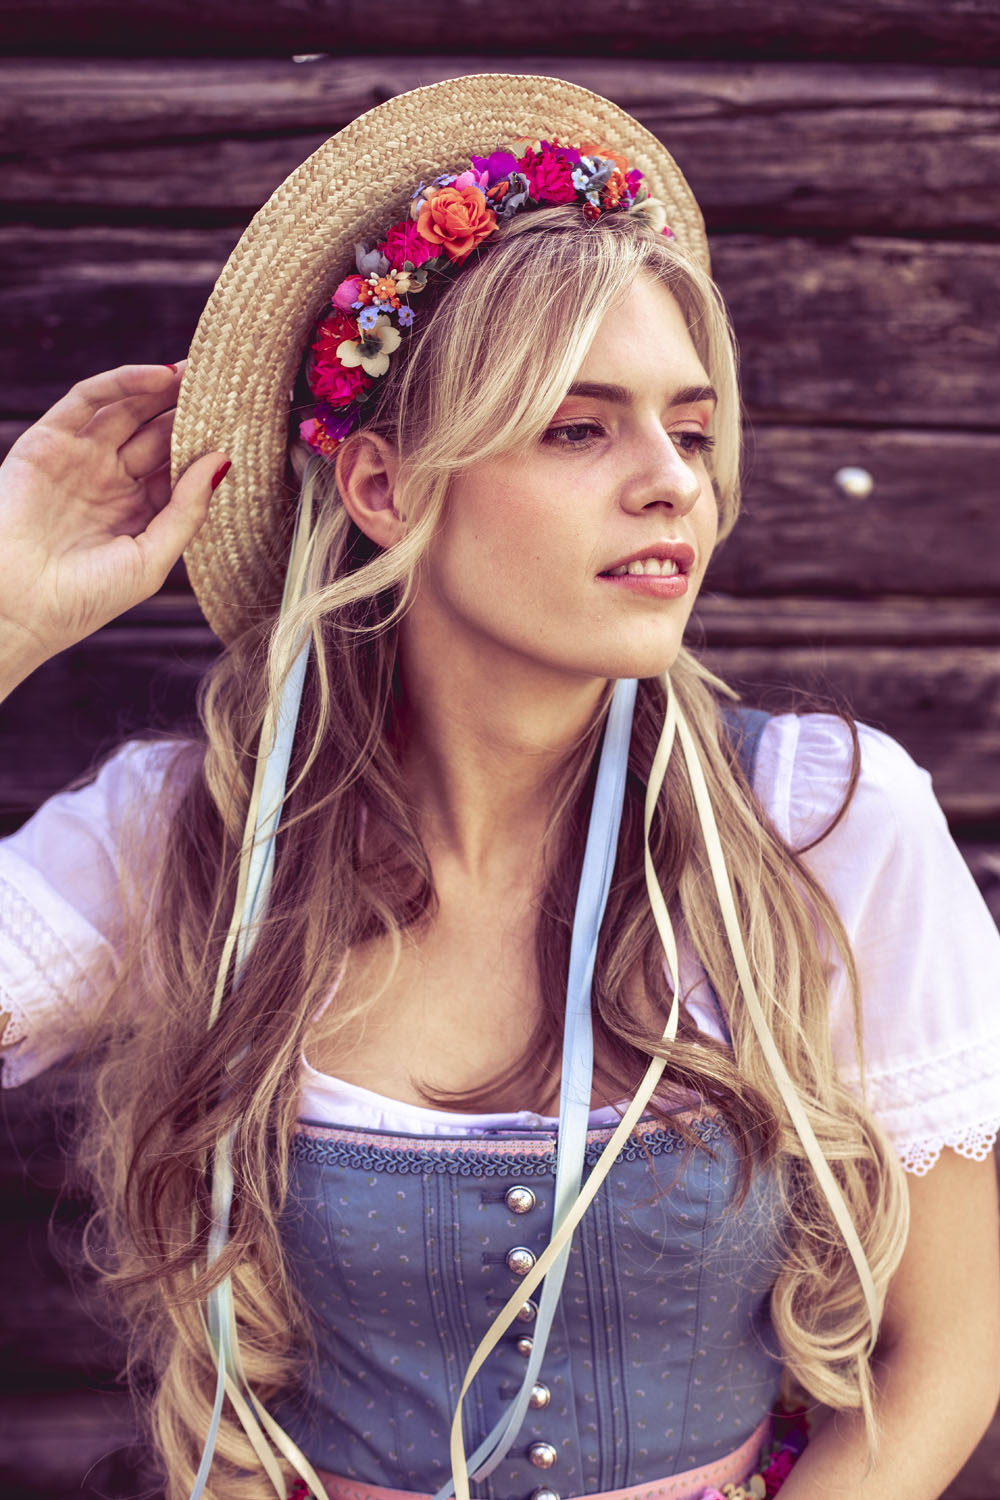 We-Are-Flowergirls-Country-Collection-Flowercrown-Sophiechen-€99,–Boater-Hat-€46,–4.jpg